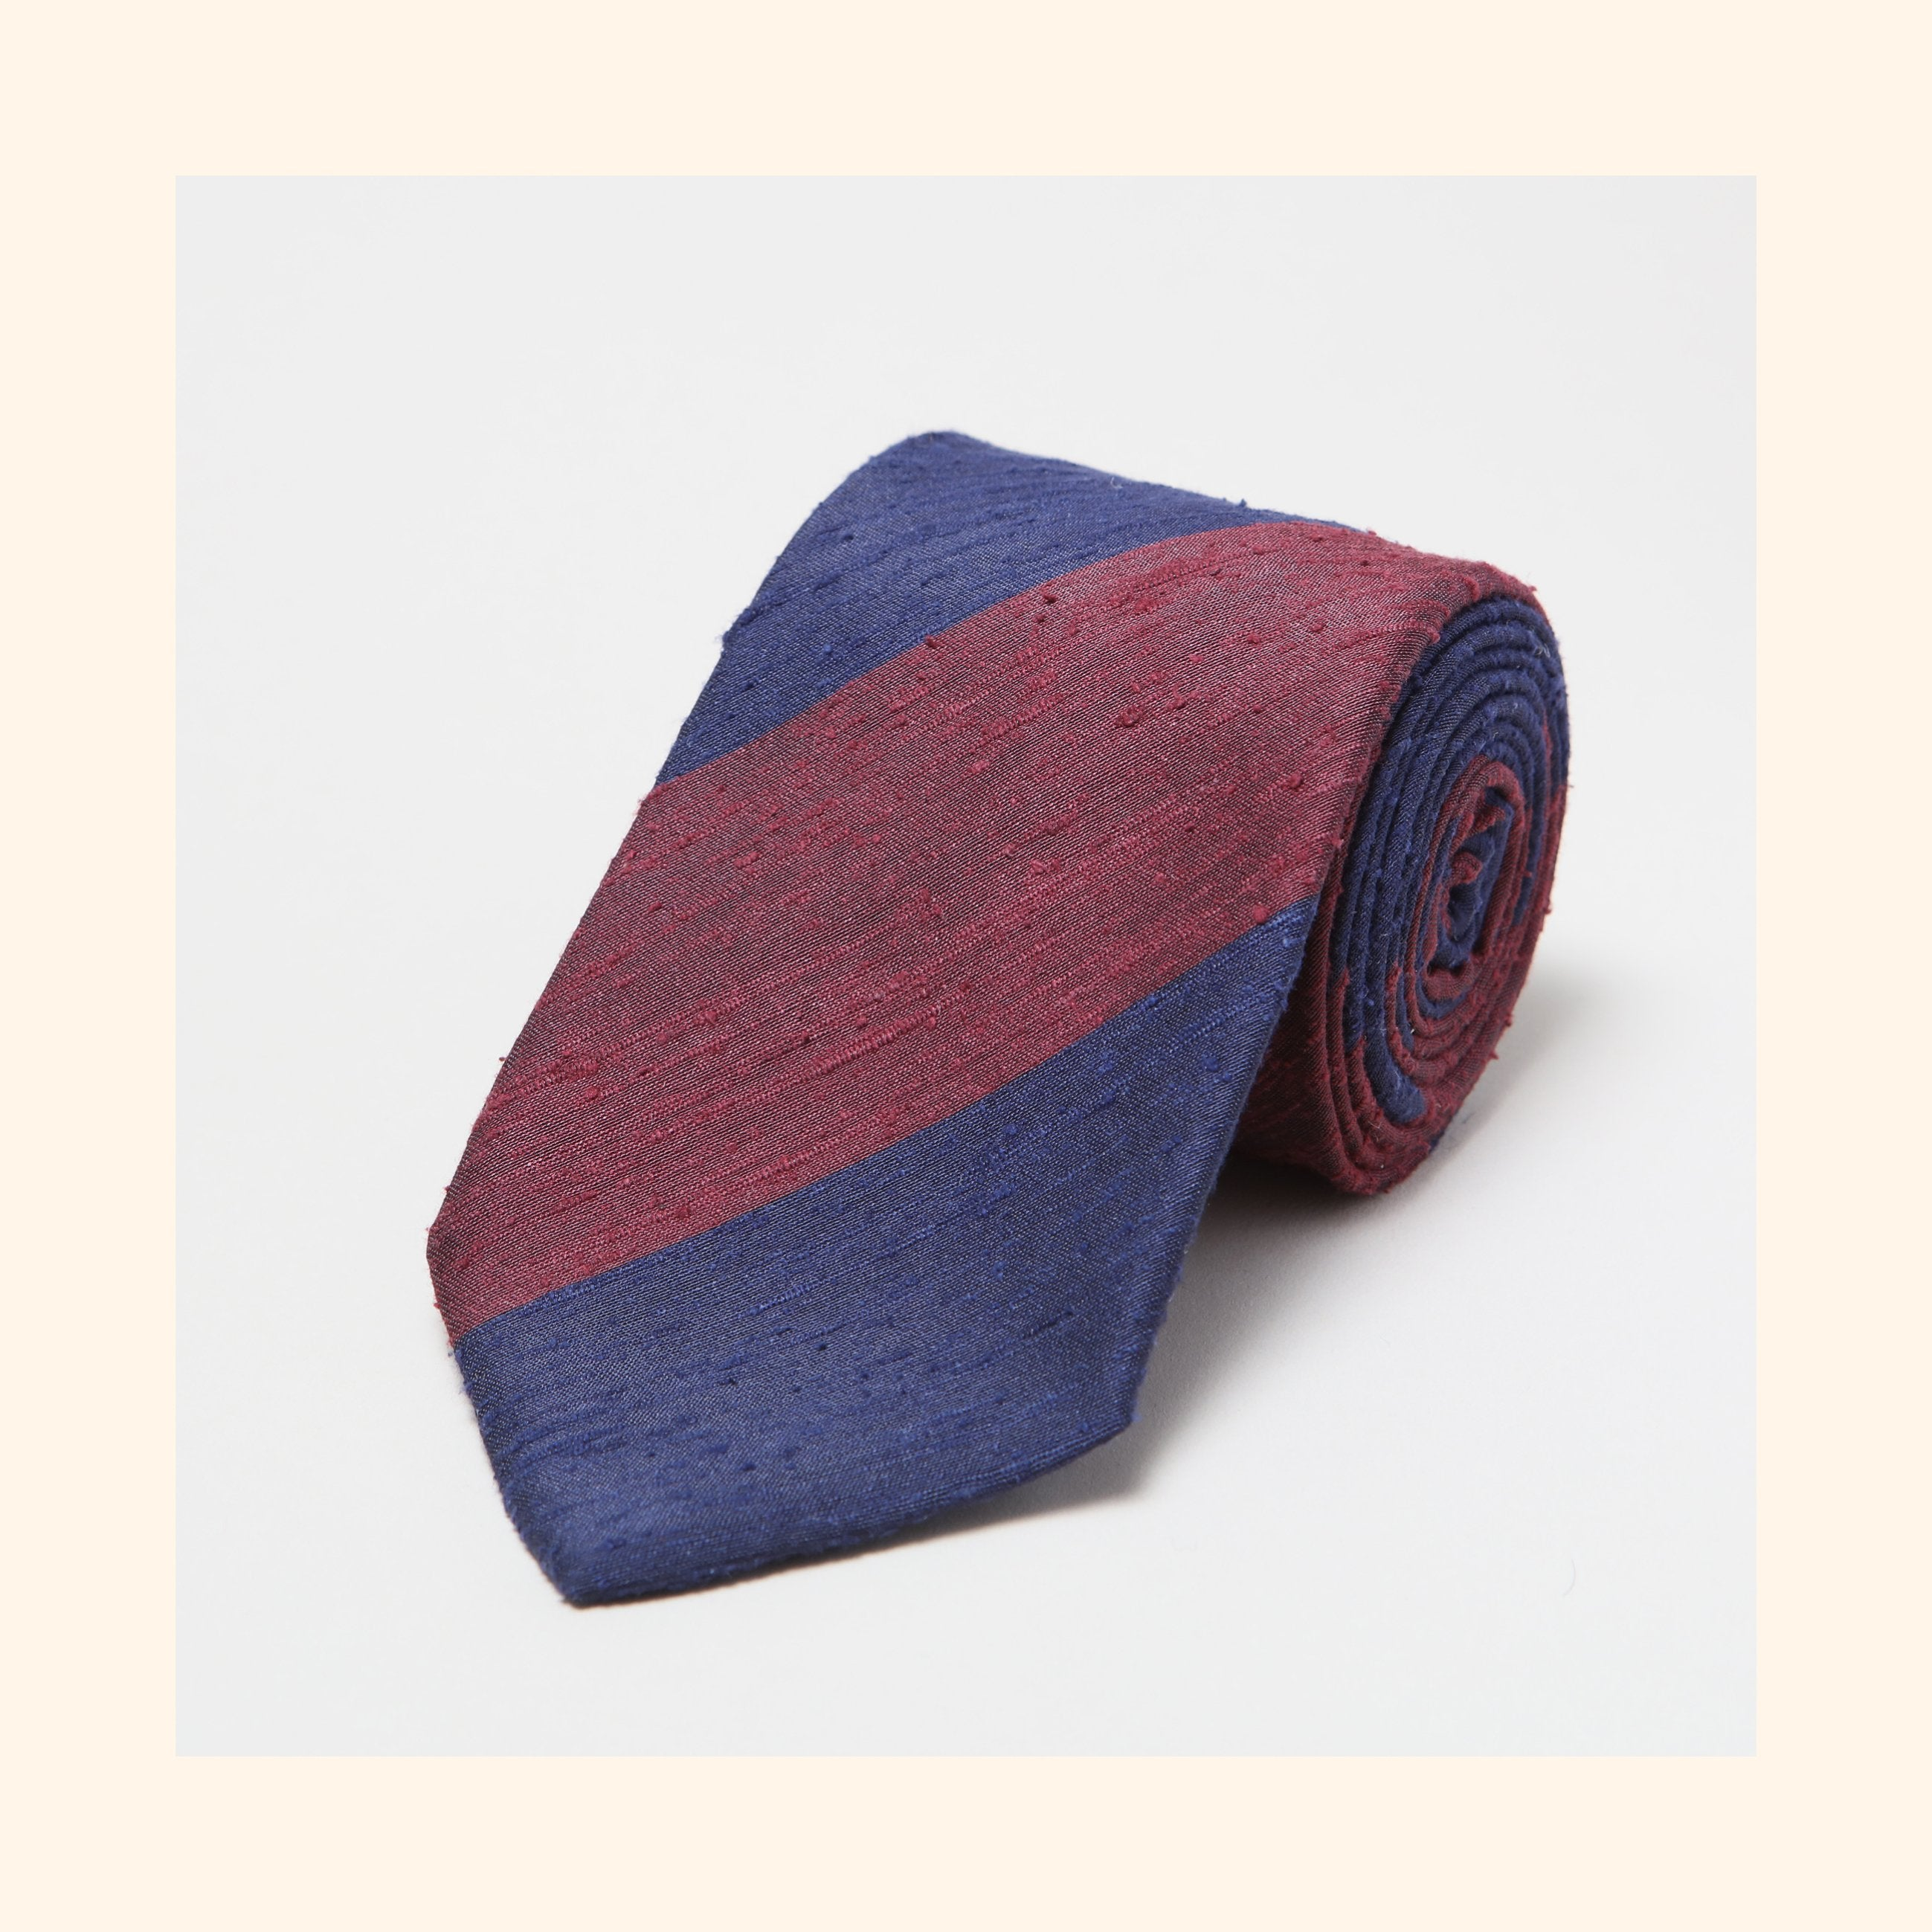 № 068 - Burgundy/Navy Wide Stripe Shantung Silk Tie